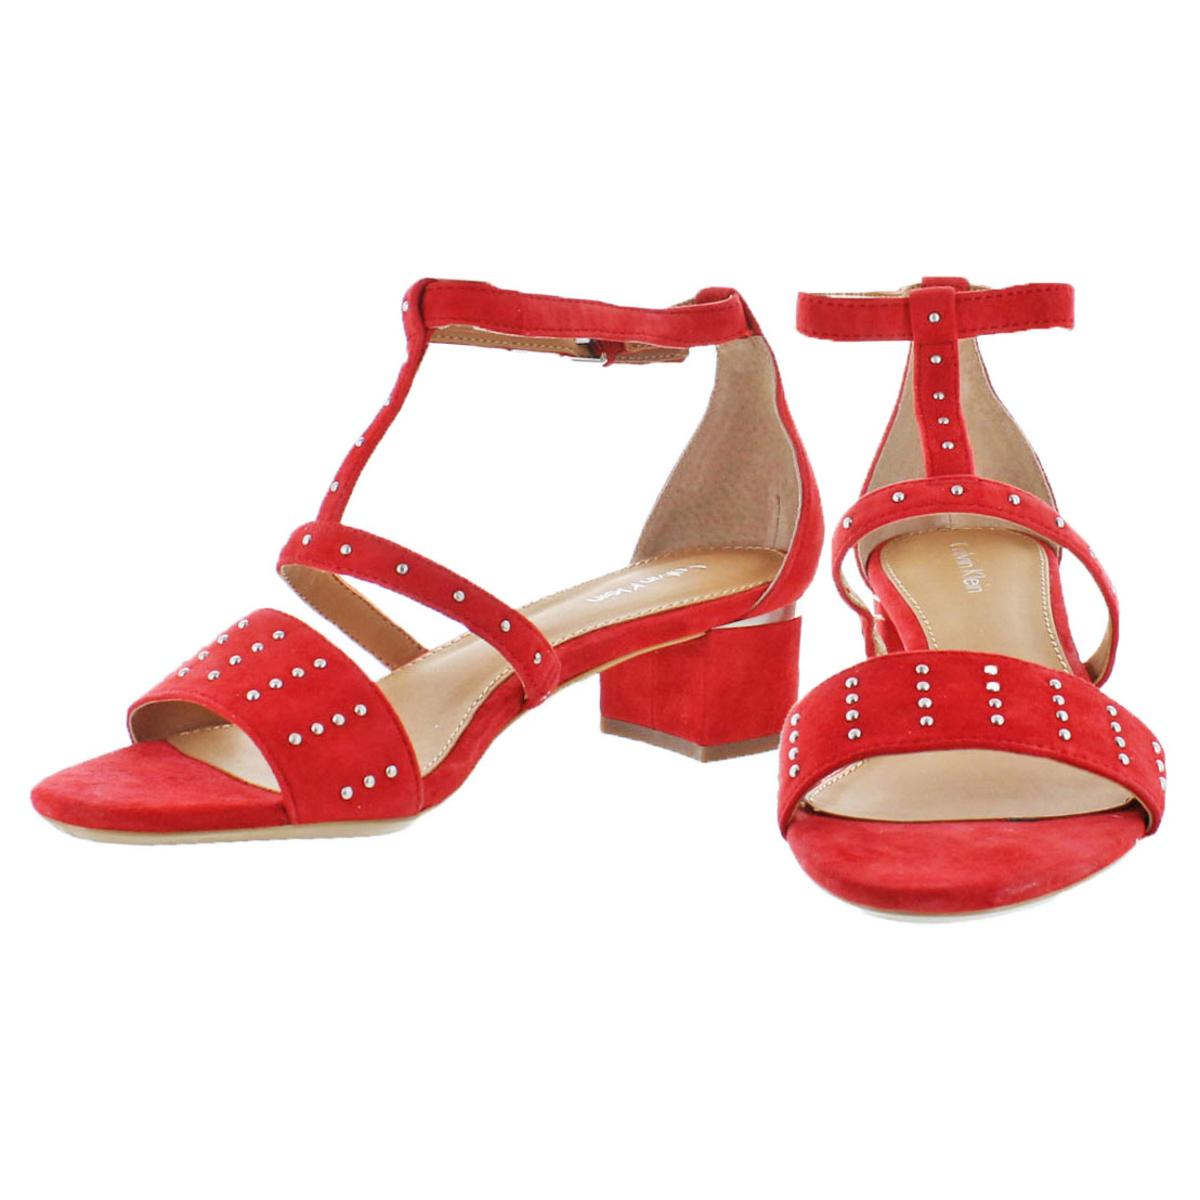 Calvin-Klein-Divina-Women-039-s-Open-Toe-Studded-Block-Heel-Shoes thumbnail 4